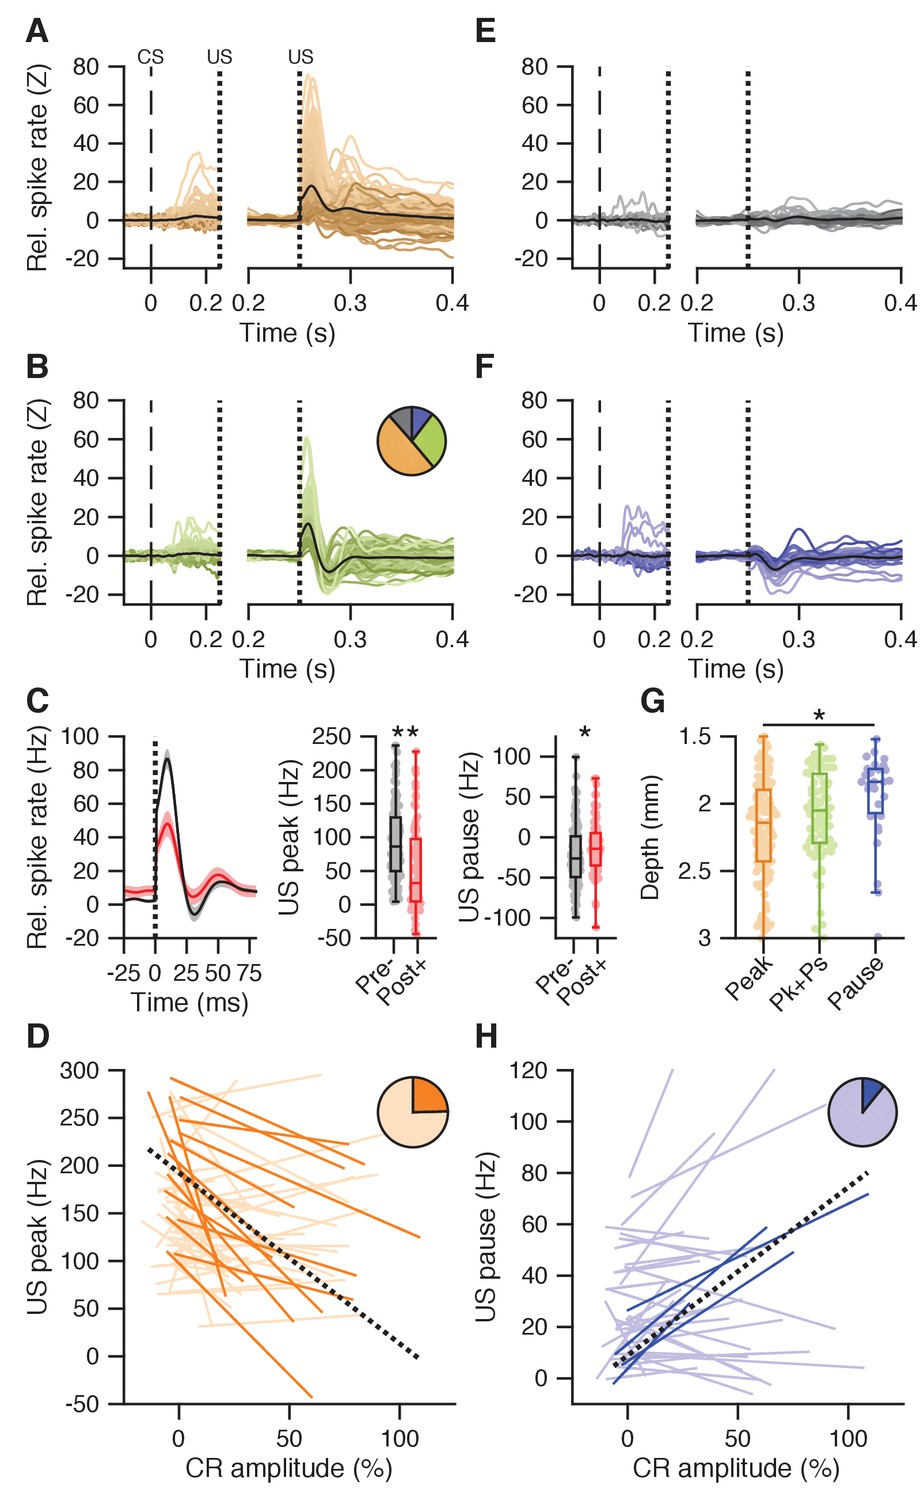 Dynamic modulation of activity in cerebellar nuclei neurons